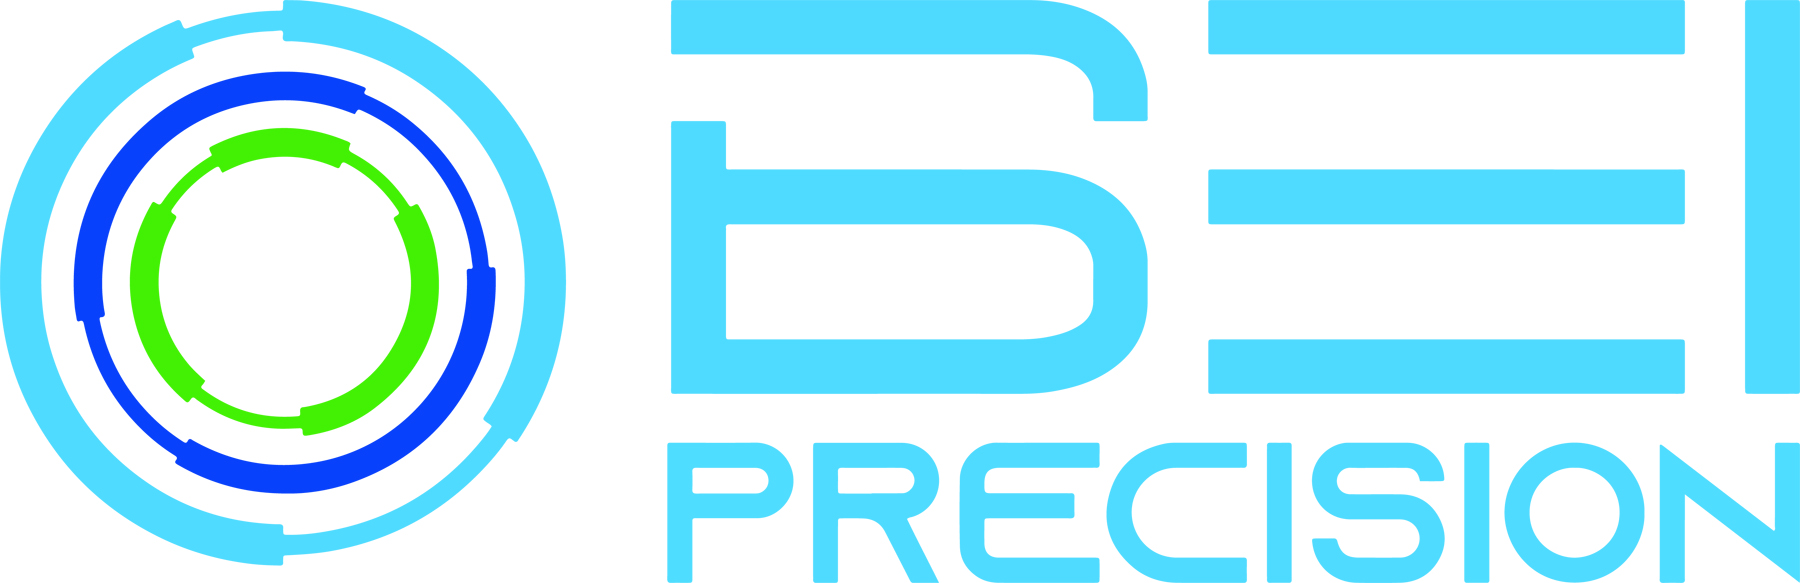 J.F. Lehman & Company Completes Sale of BEI Precision, August 17 2021